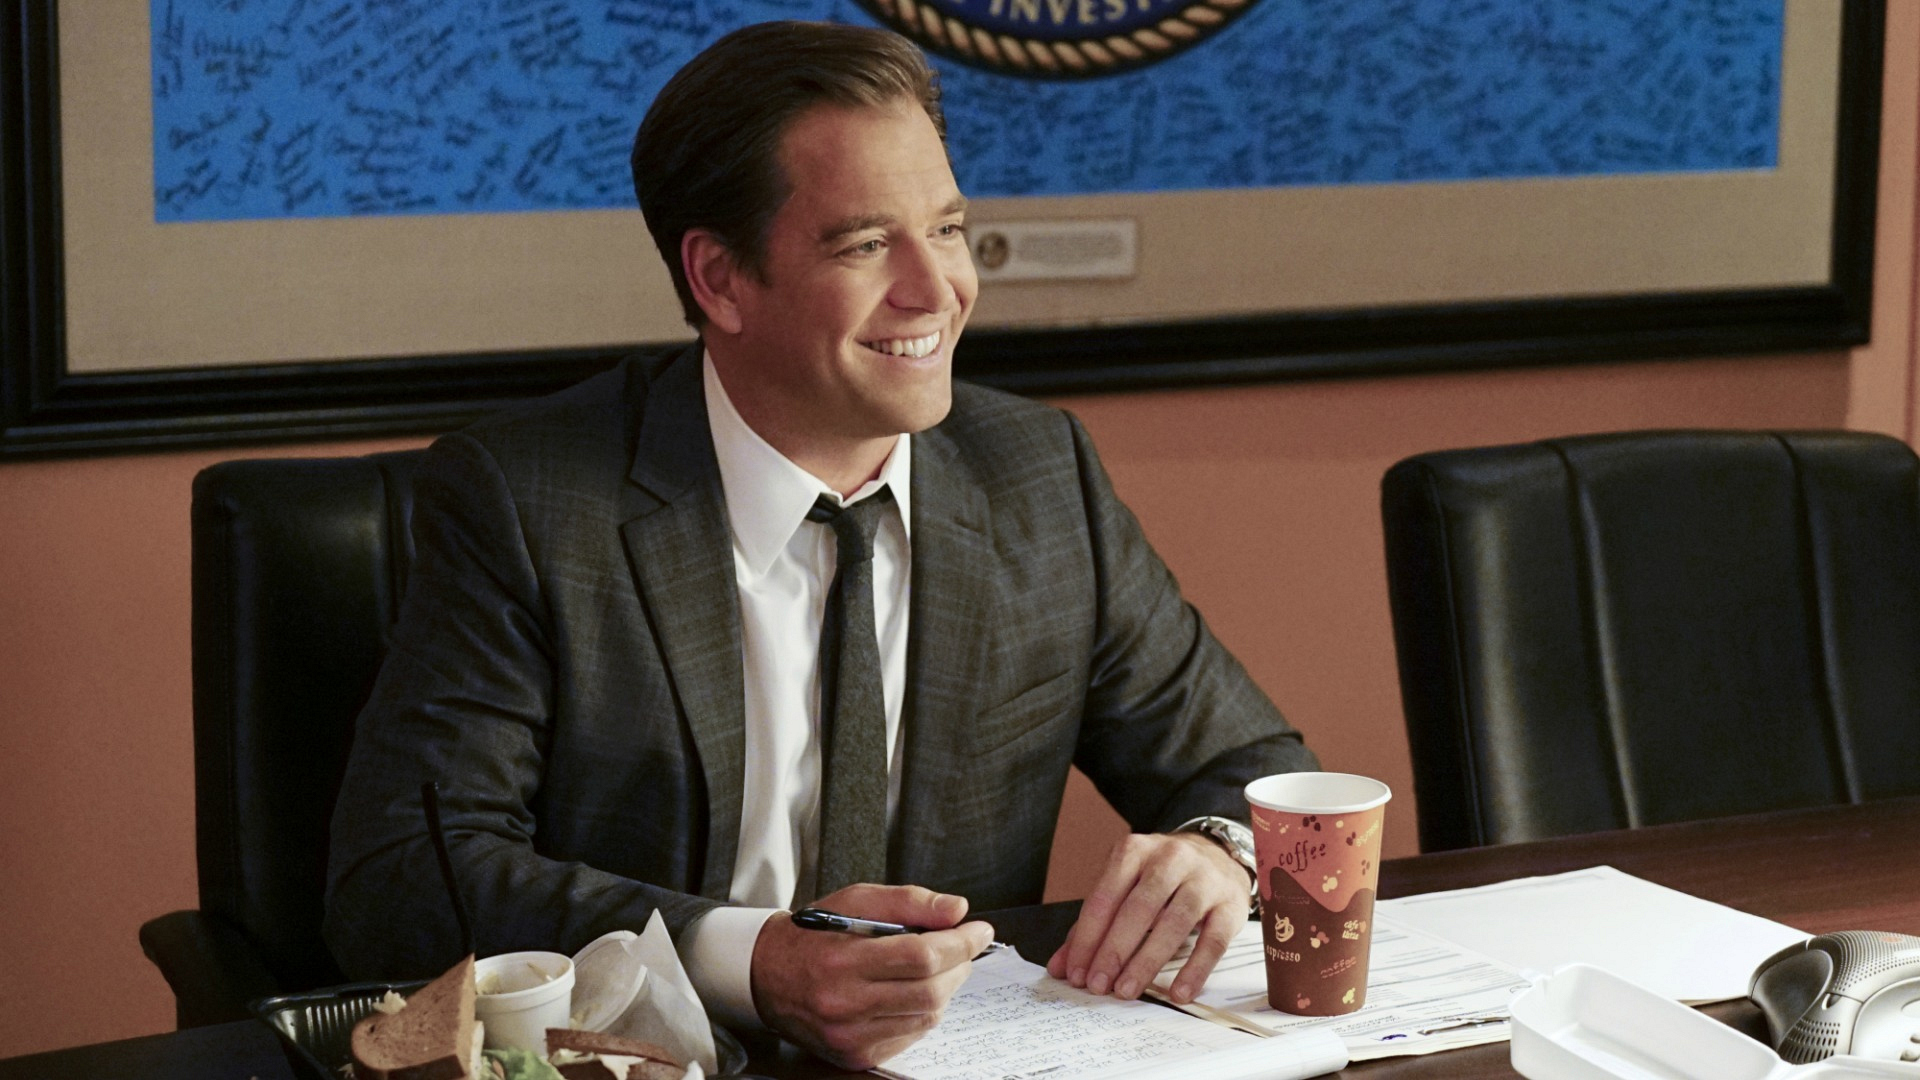 DiNozzo flashes a charming smile.